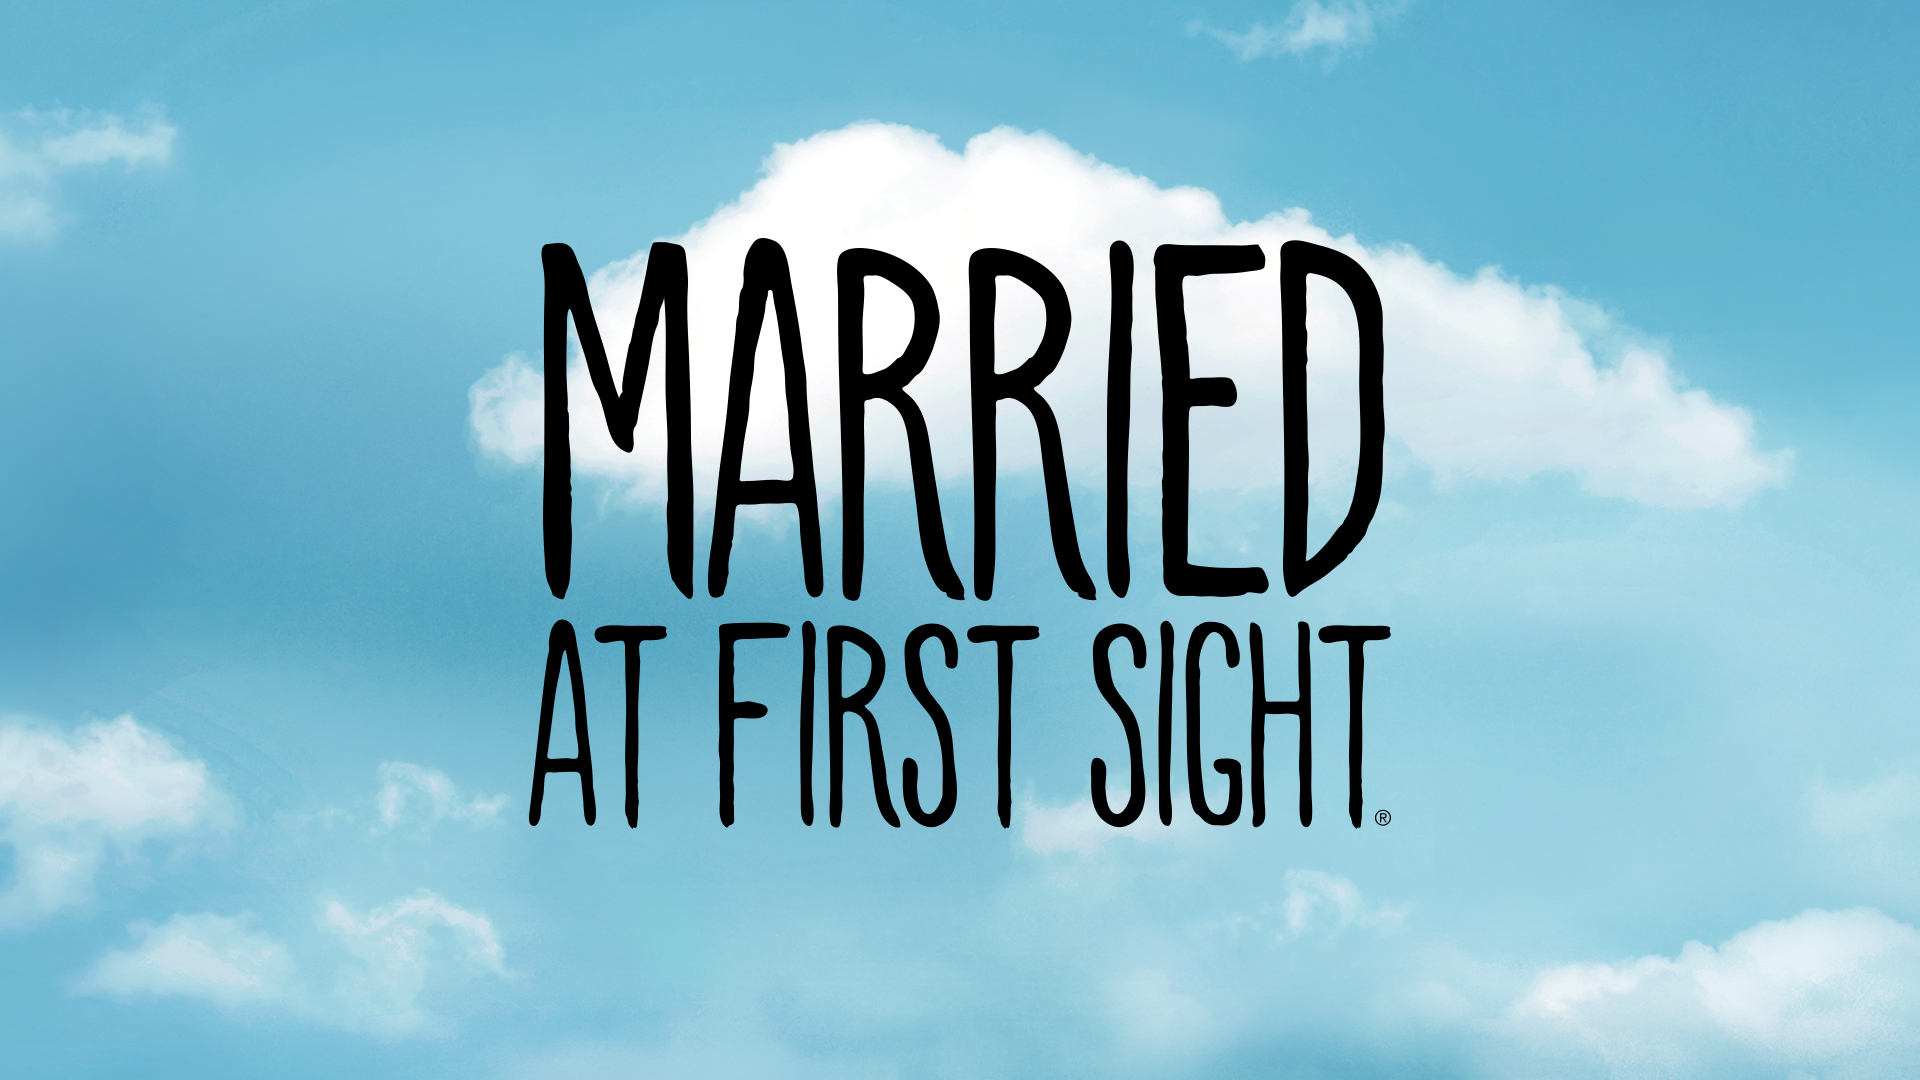 Married at First Sight Full Episodes, Video & More   Lifetime